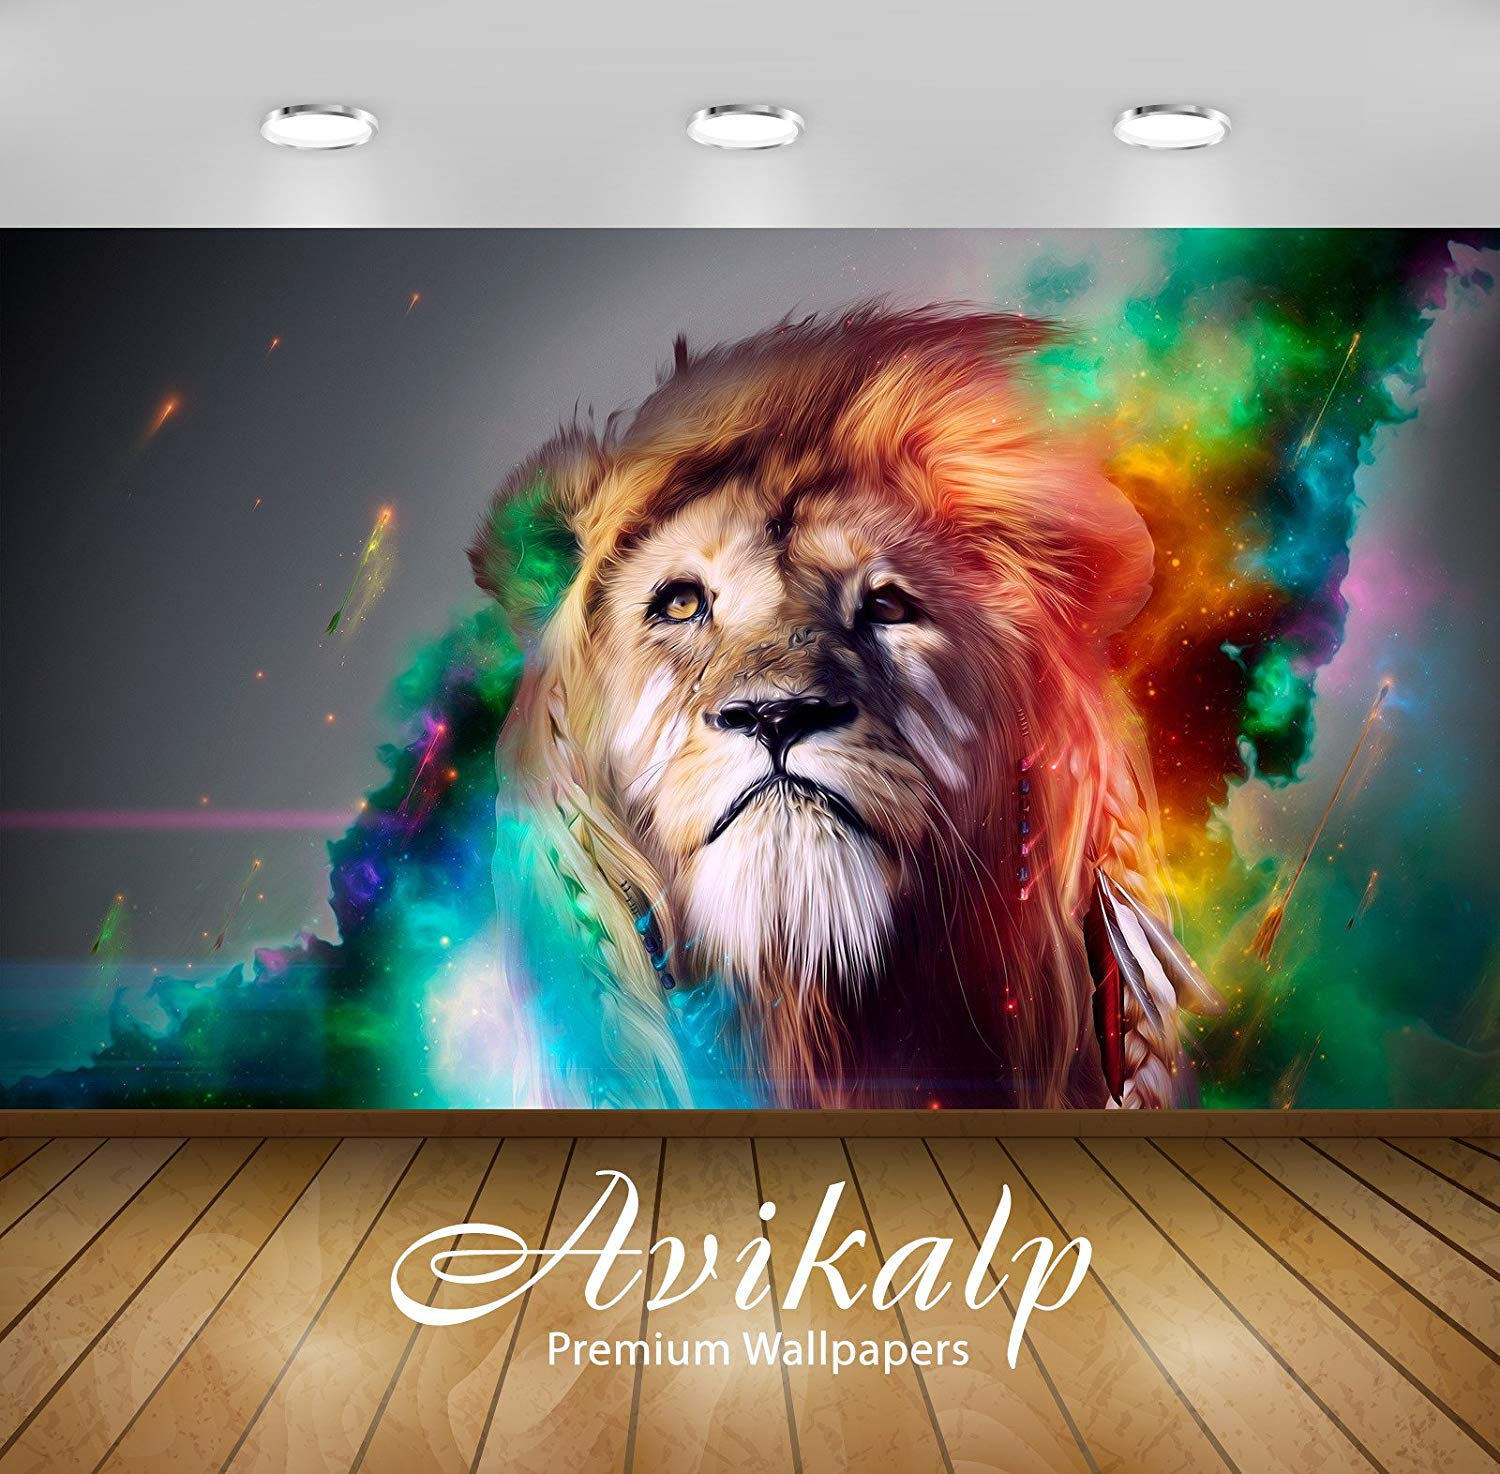 Avikalp Exclusive Awi1717 Lion Color Abstract Full - Colorful Lion - HD Wallpaper